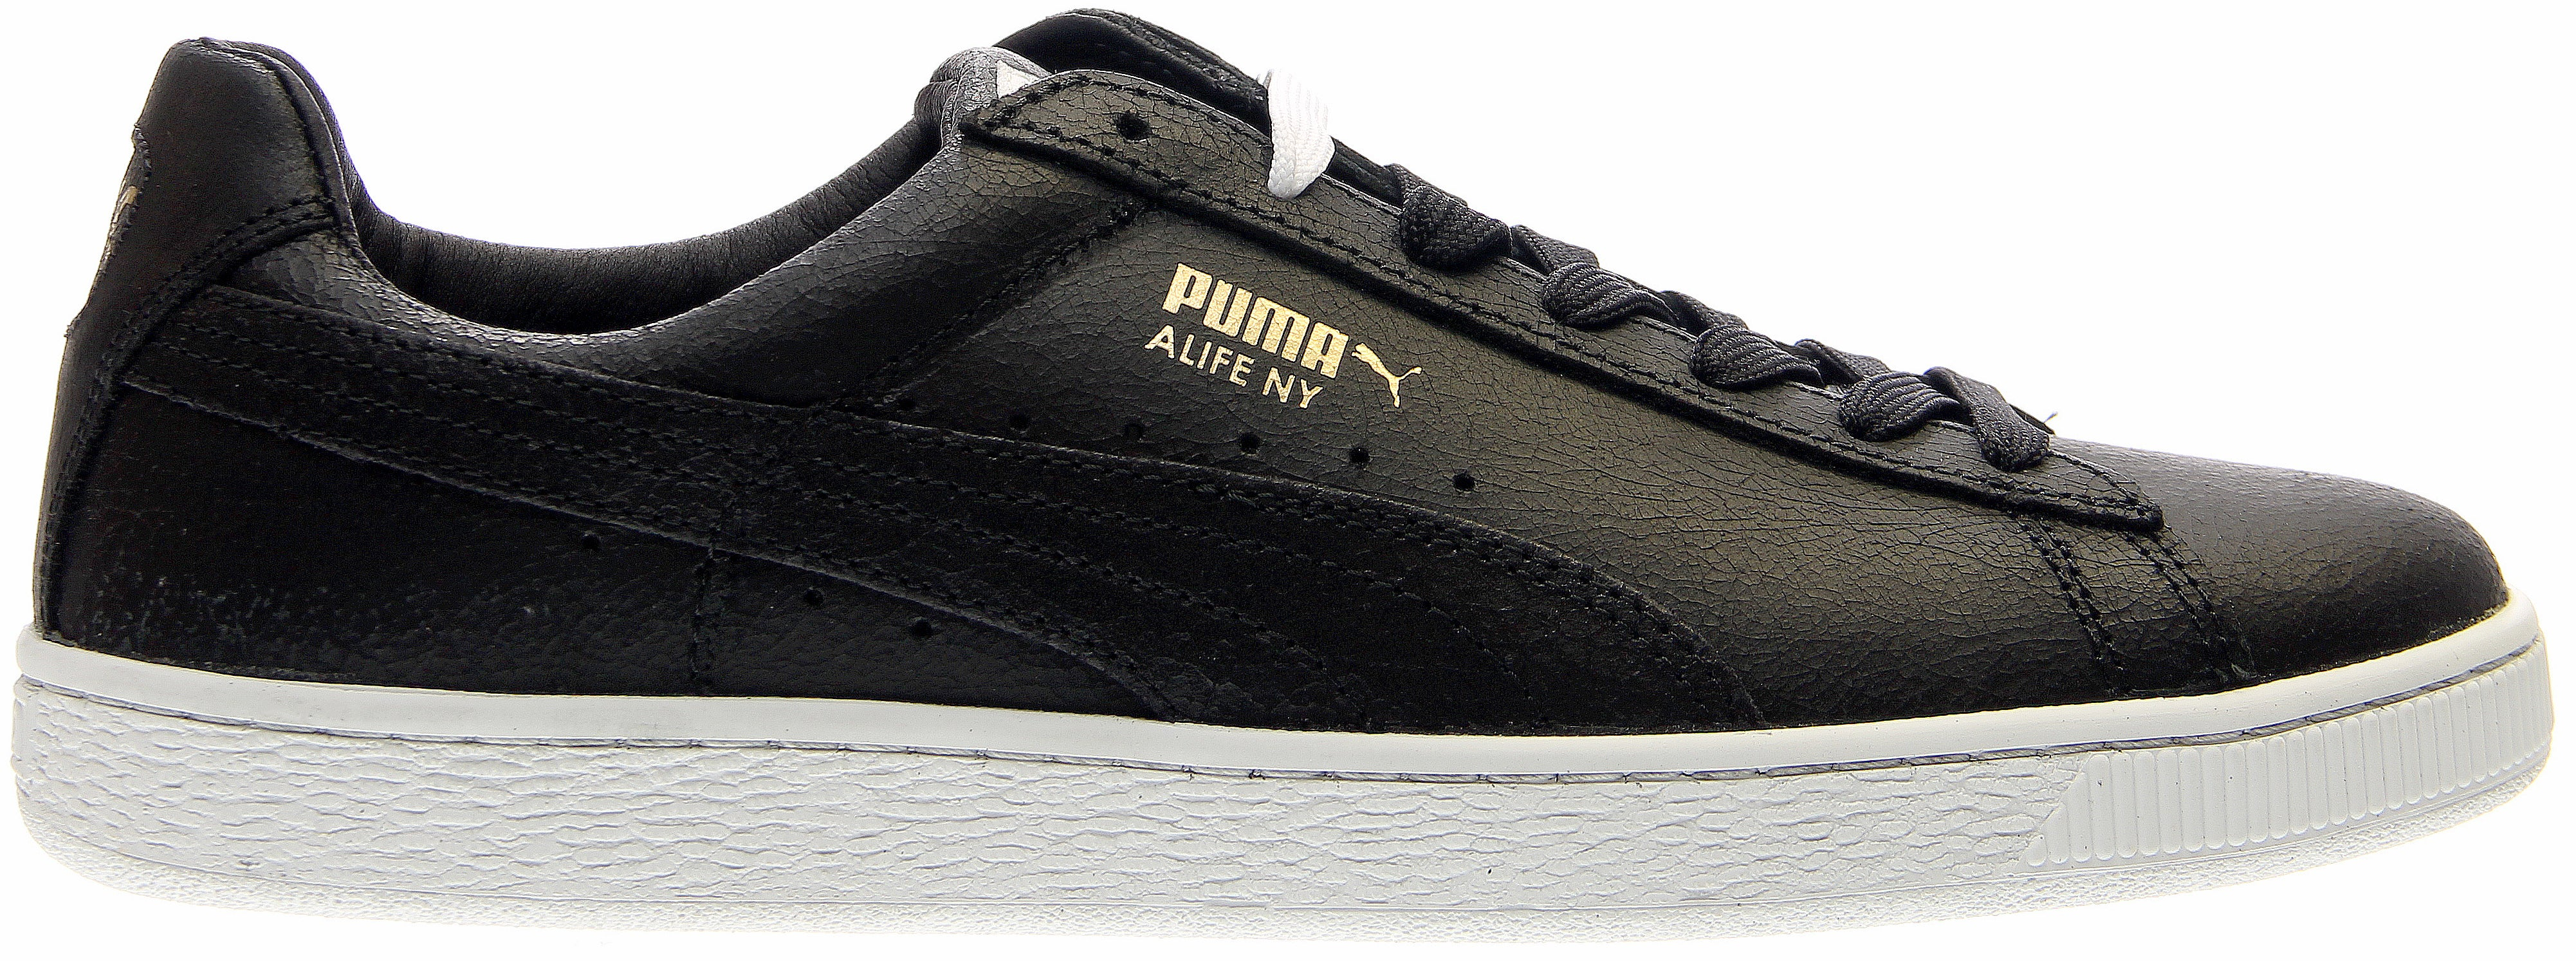 Puma Men s Shoes and Sneakers at MenStyle USA 8e655b040